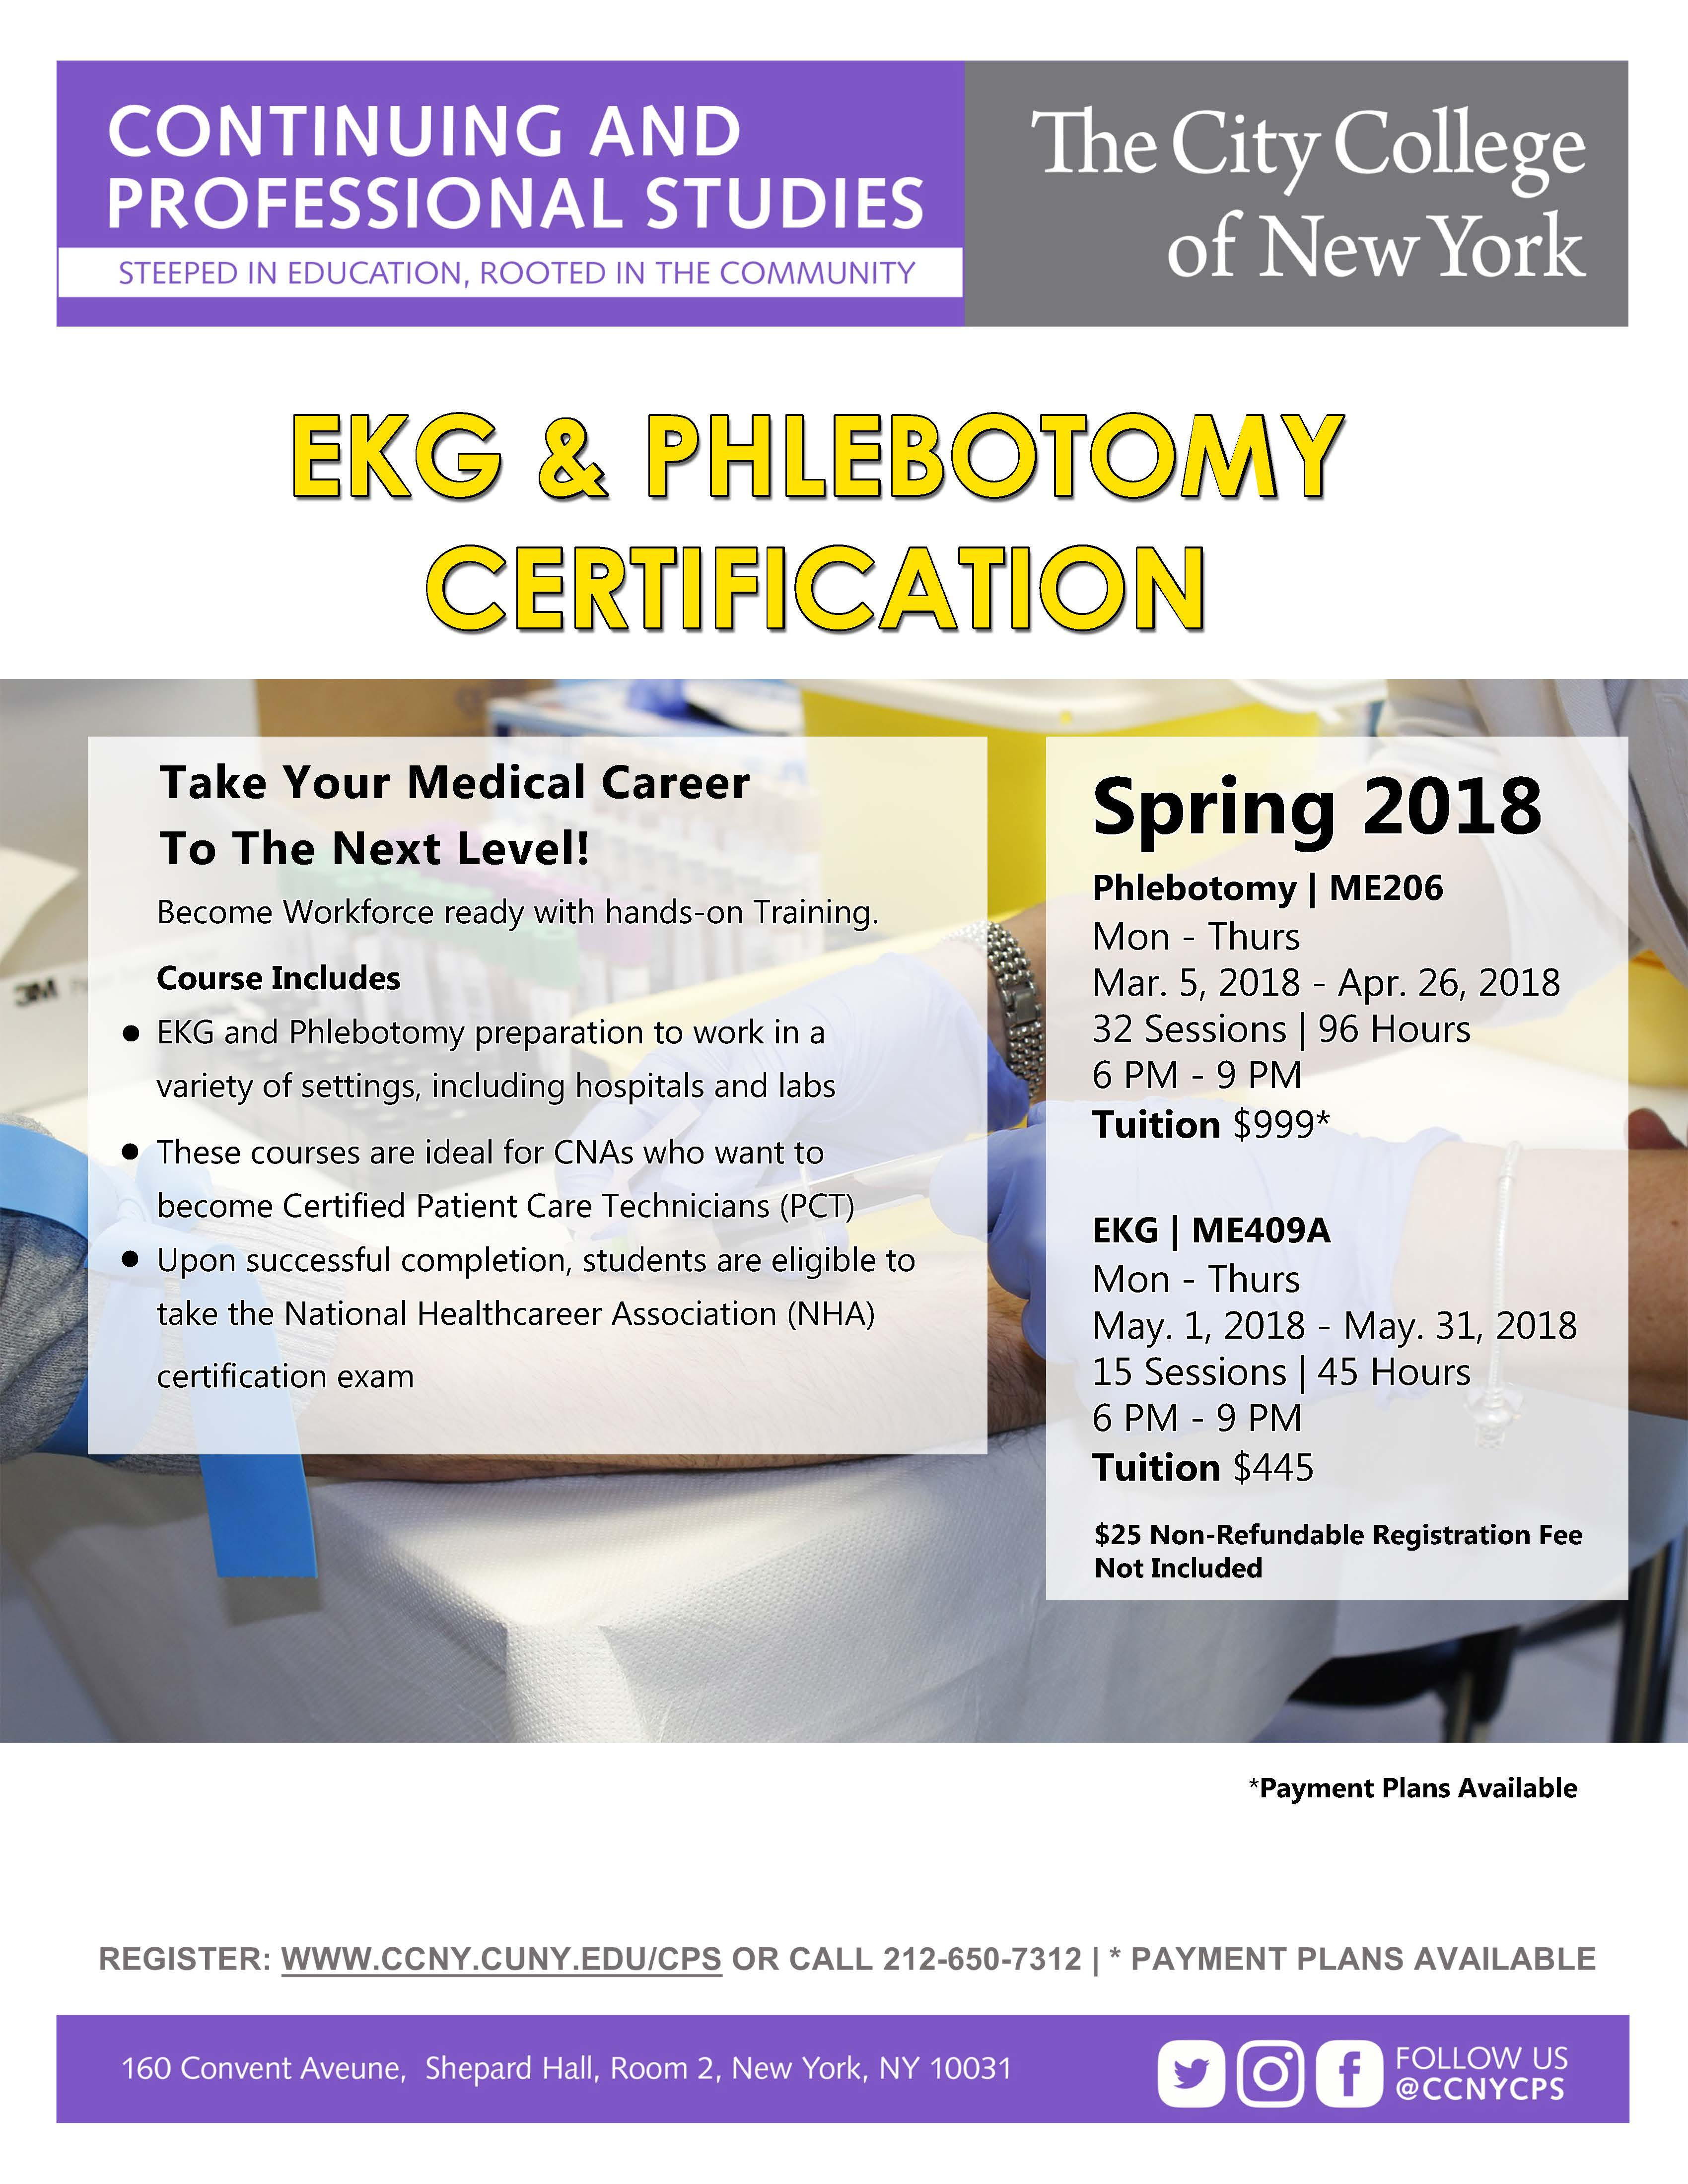 Ekg phlebotomy certification the city college of new york ekg phlebotomy xflitez Image collections